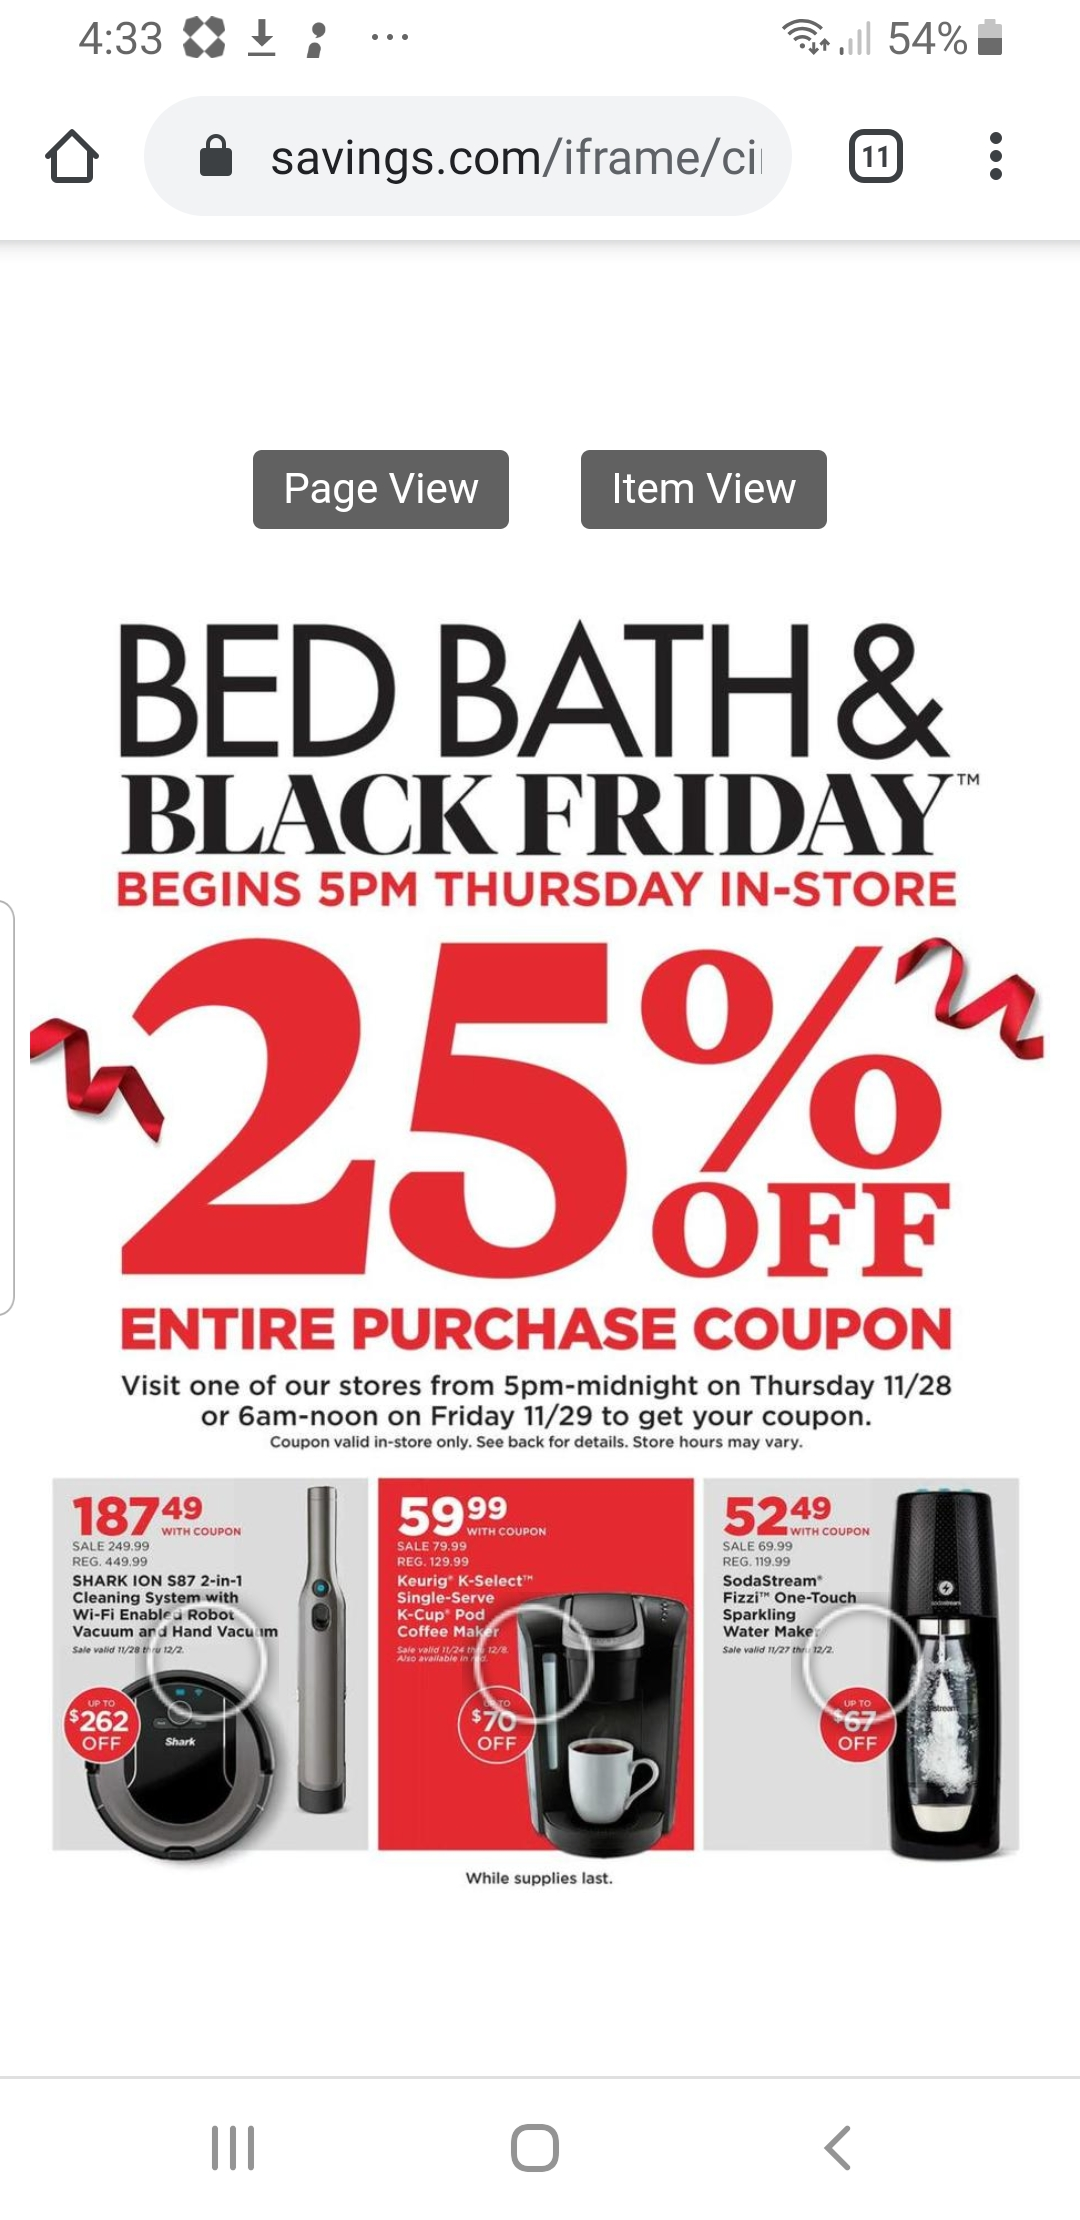 Bed Bath & Beyond Black Friday Deals!